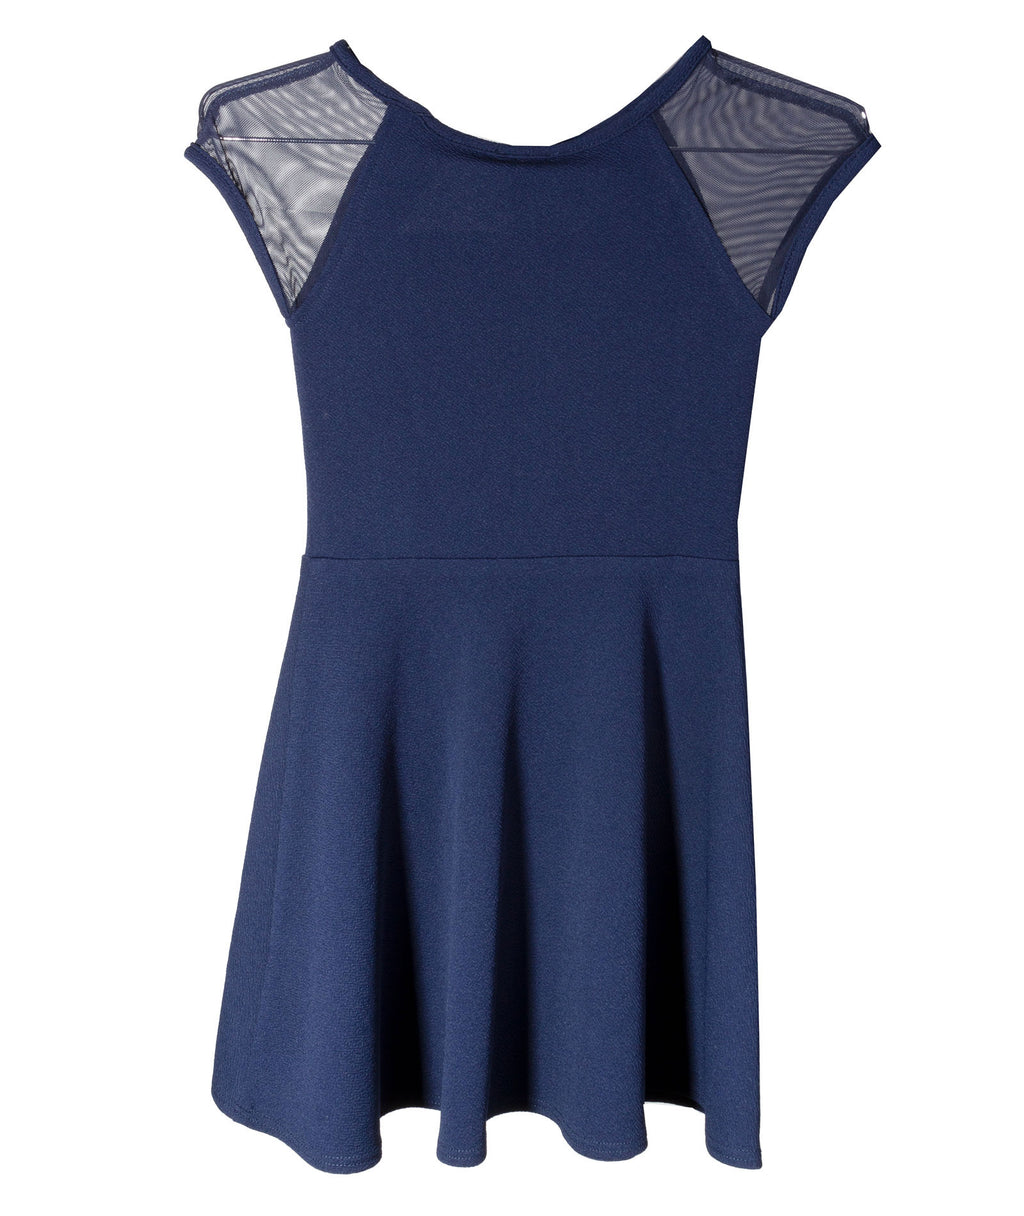 Sally Miller Girls Shea Navy Dress